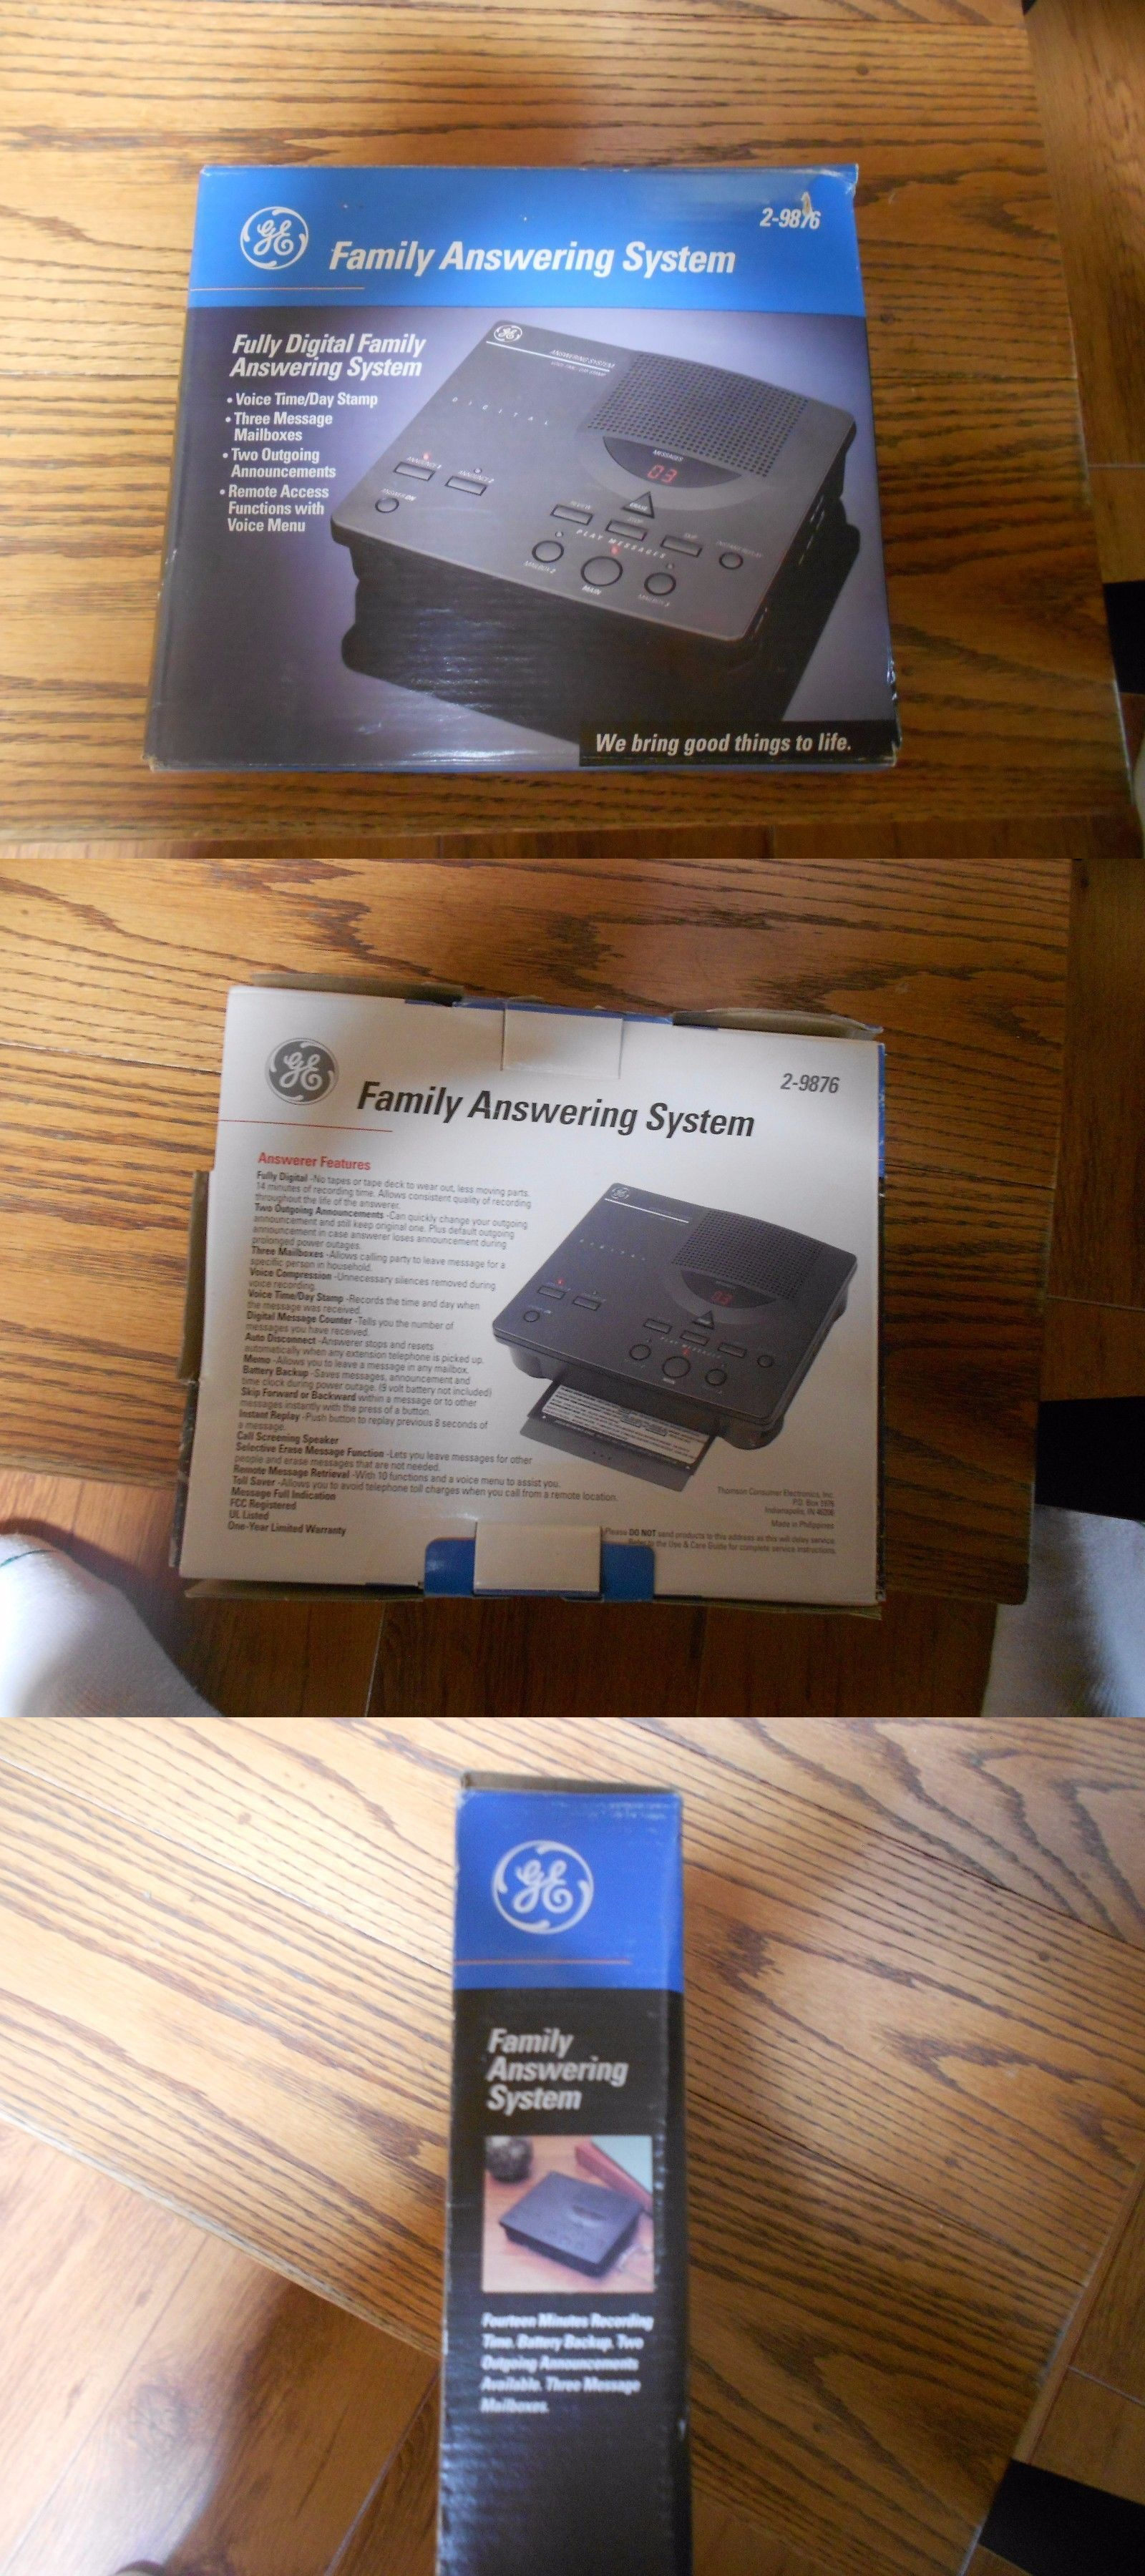 Answering Machines Ge 2 9876 Fully Digital Family Answering System